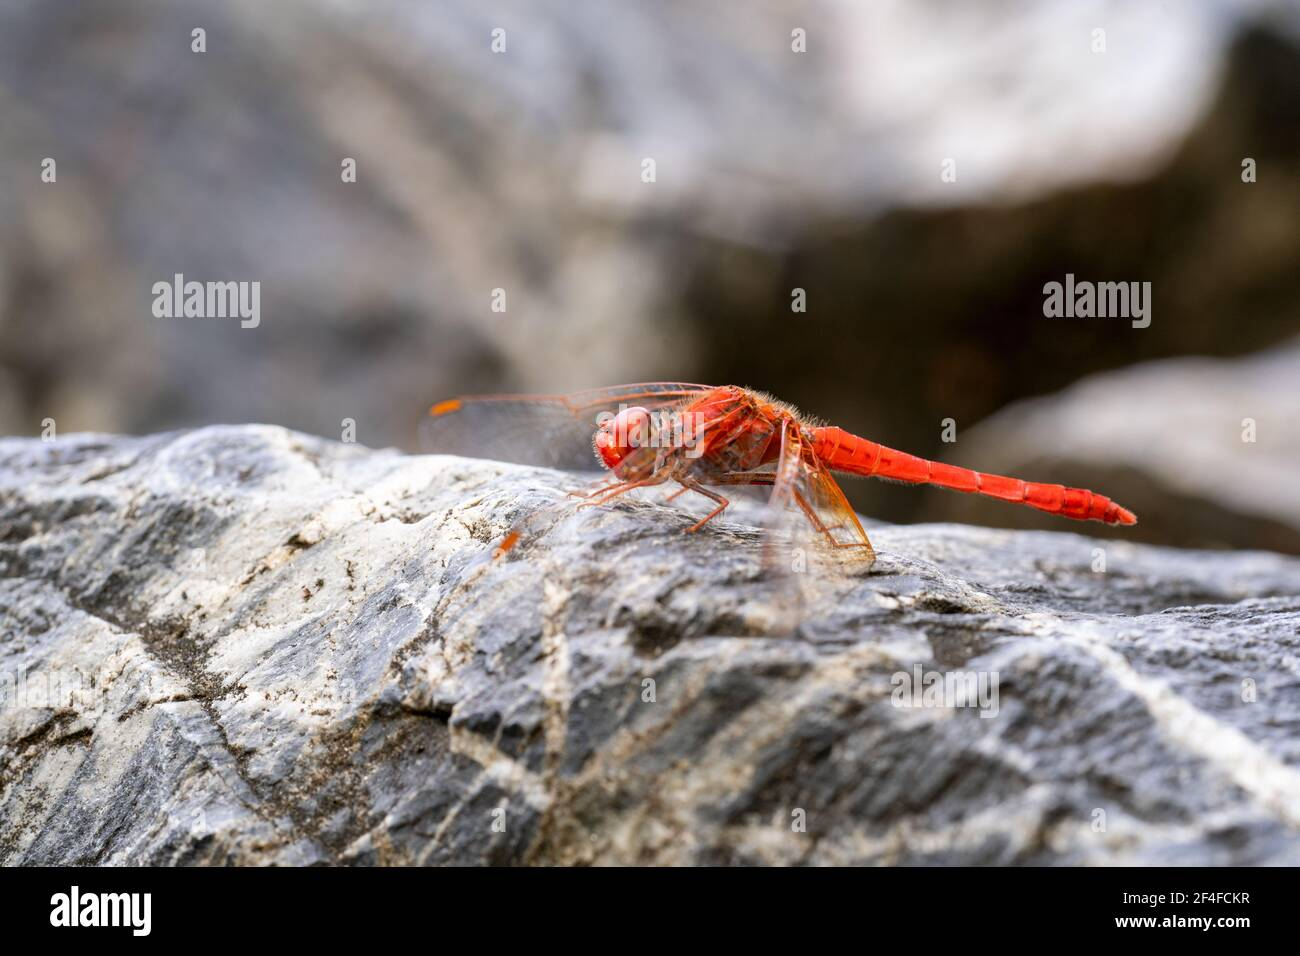 Side view shot of a red dragon fly sitting on a rock Stock Photo